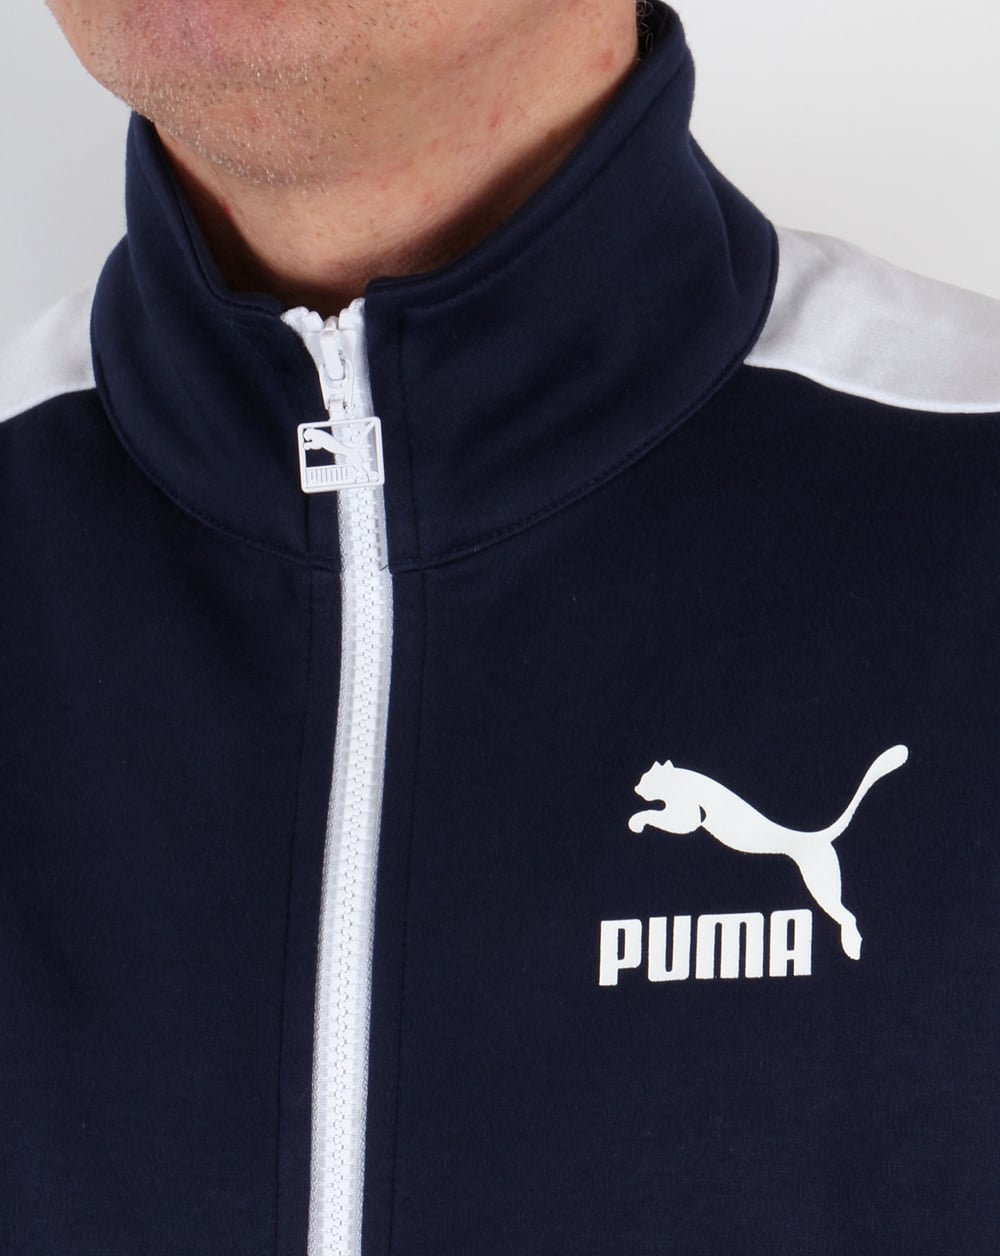 puma t7 track top navy white tracksuit jacket warm up mens. Black Bedroom Furniture Sets. Home Design Ideas